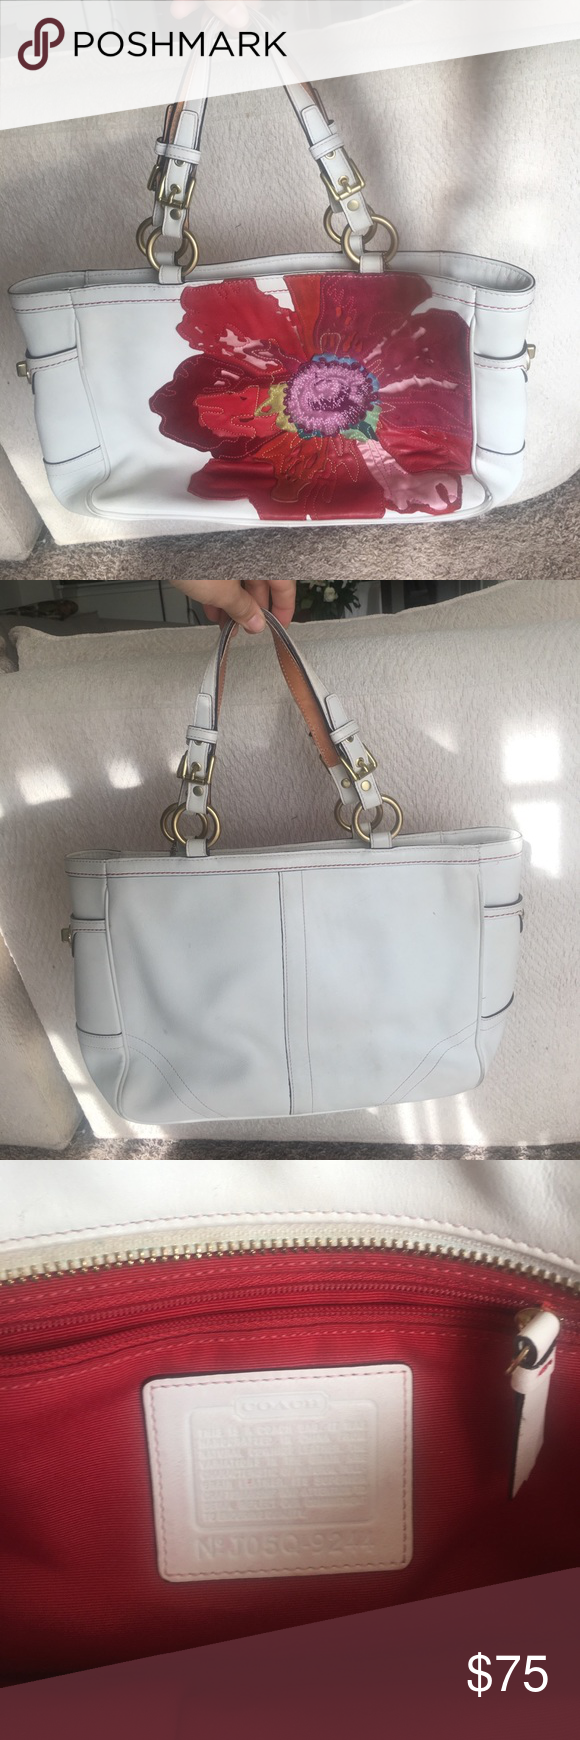 Authentic Coach Poppy Tote Bag With Flower White Leather Bag With